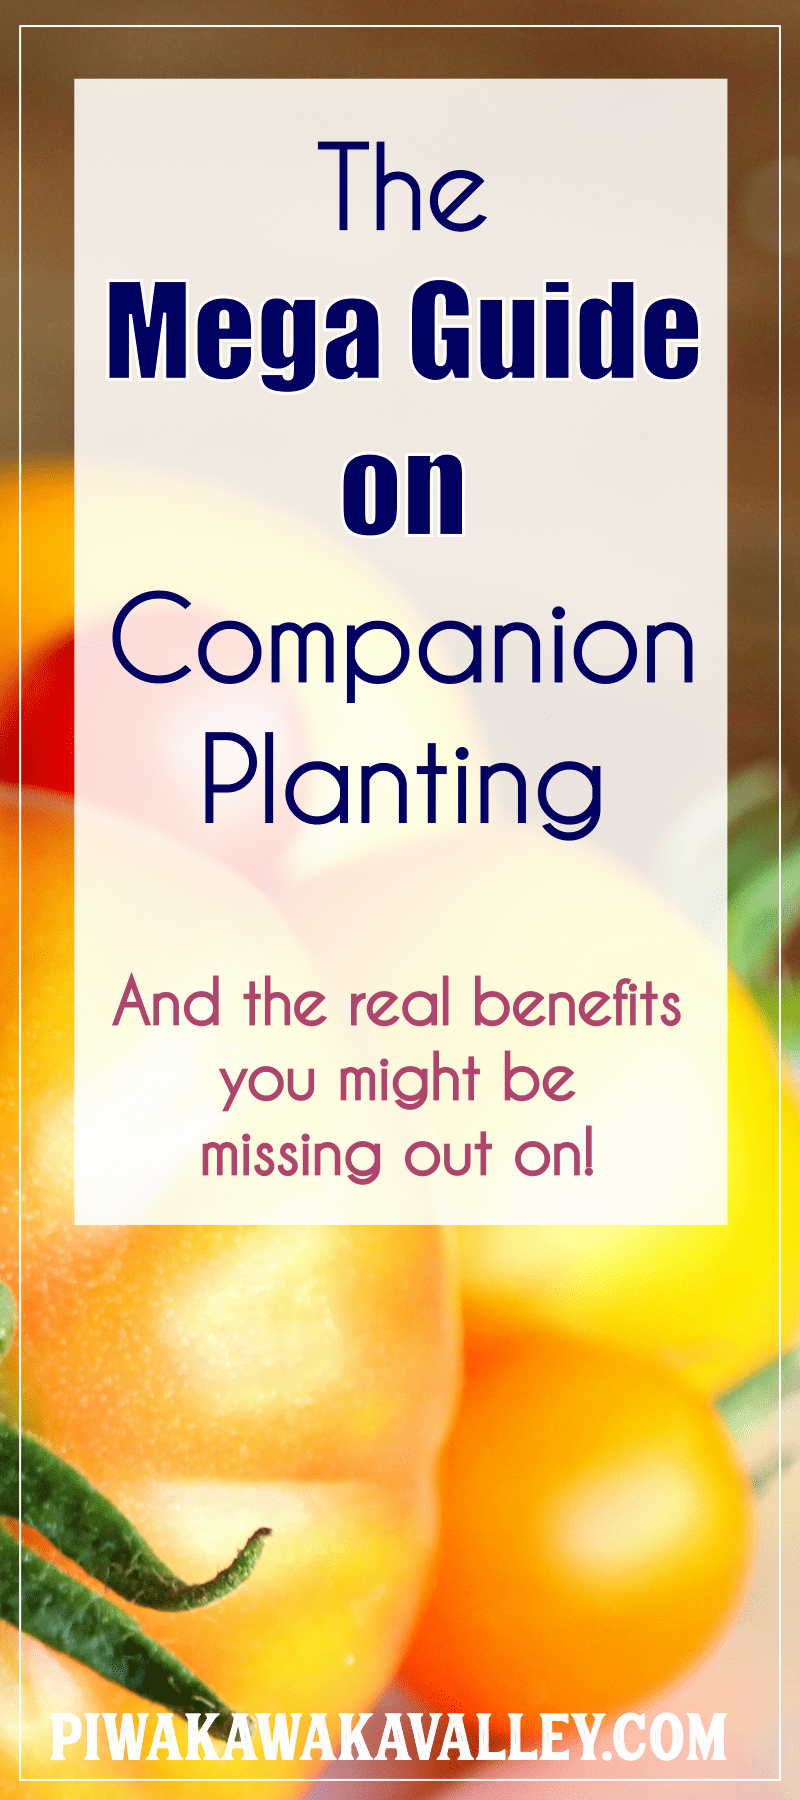 Companion Planting Chart for Vegetables Lovely Panion Planting Chart for Ve Ables and Herbs